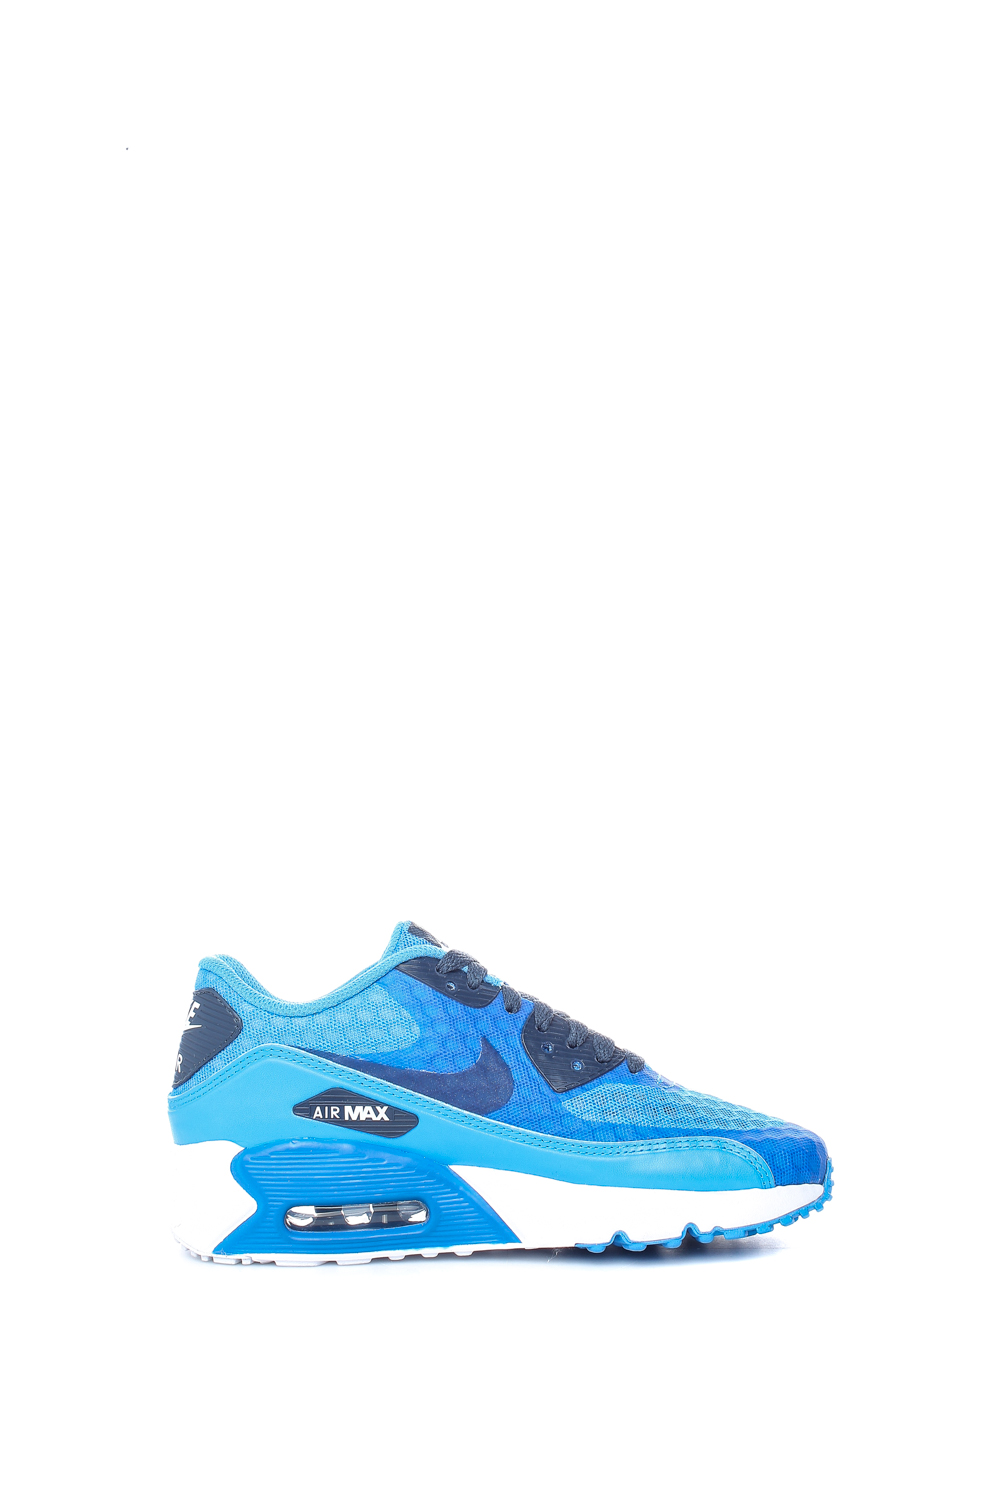 NIKE – Παιδικά αθλητικά παπούτσια Nike AIR MAX 90 ULTRA 2.0 BR (GS) μπλε.  Factoryoutlet 71183290121